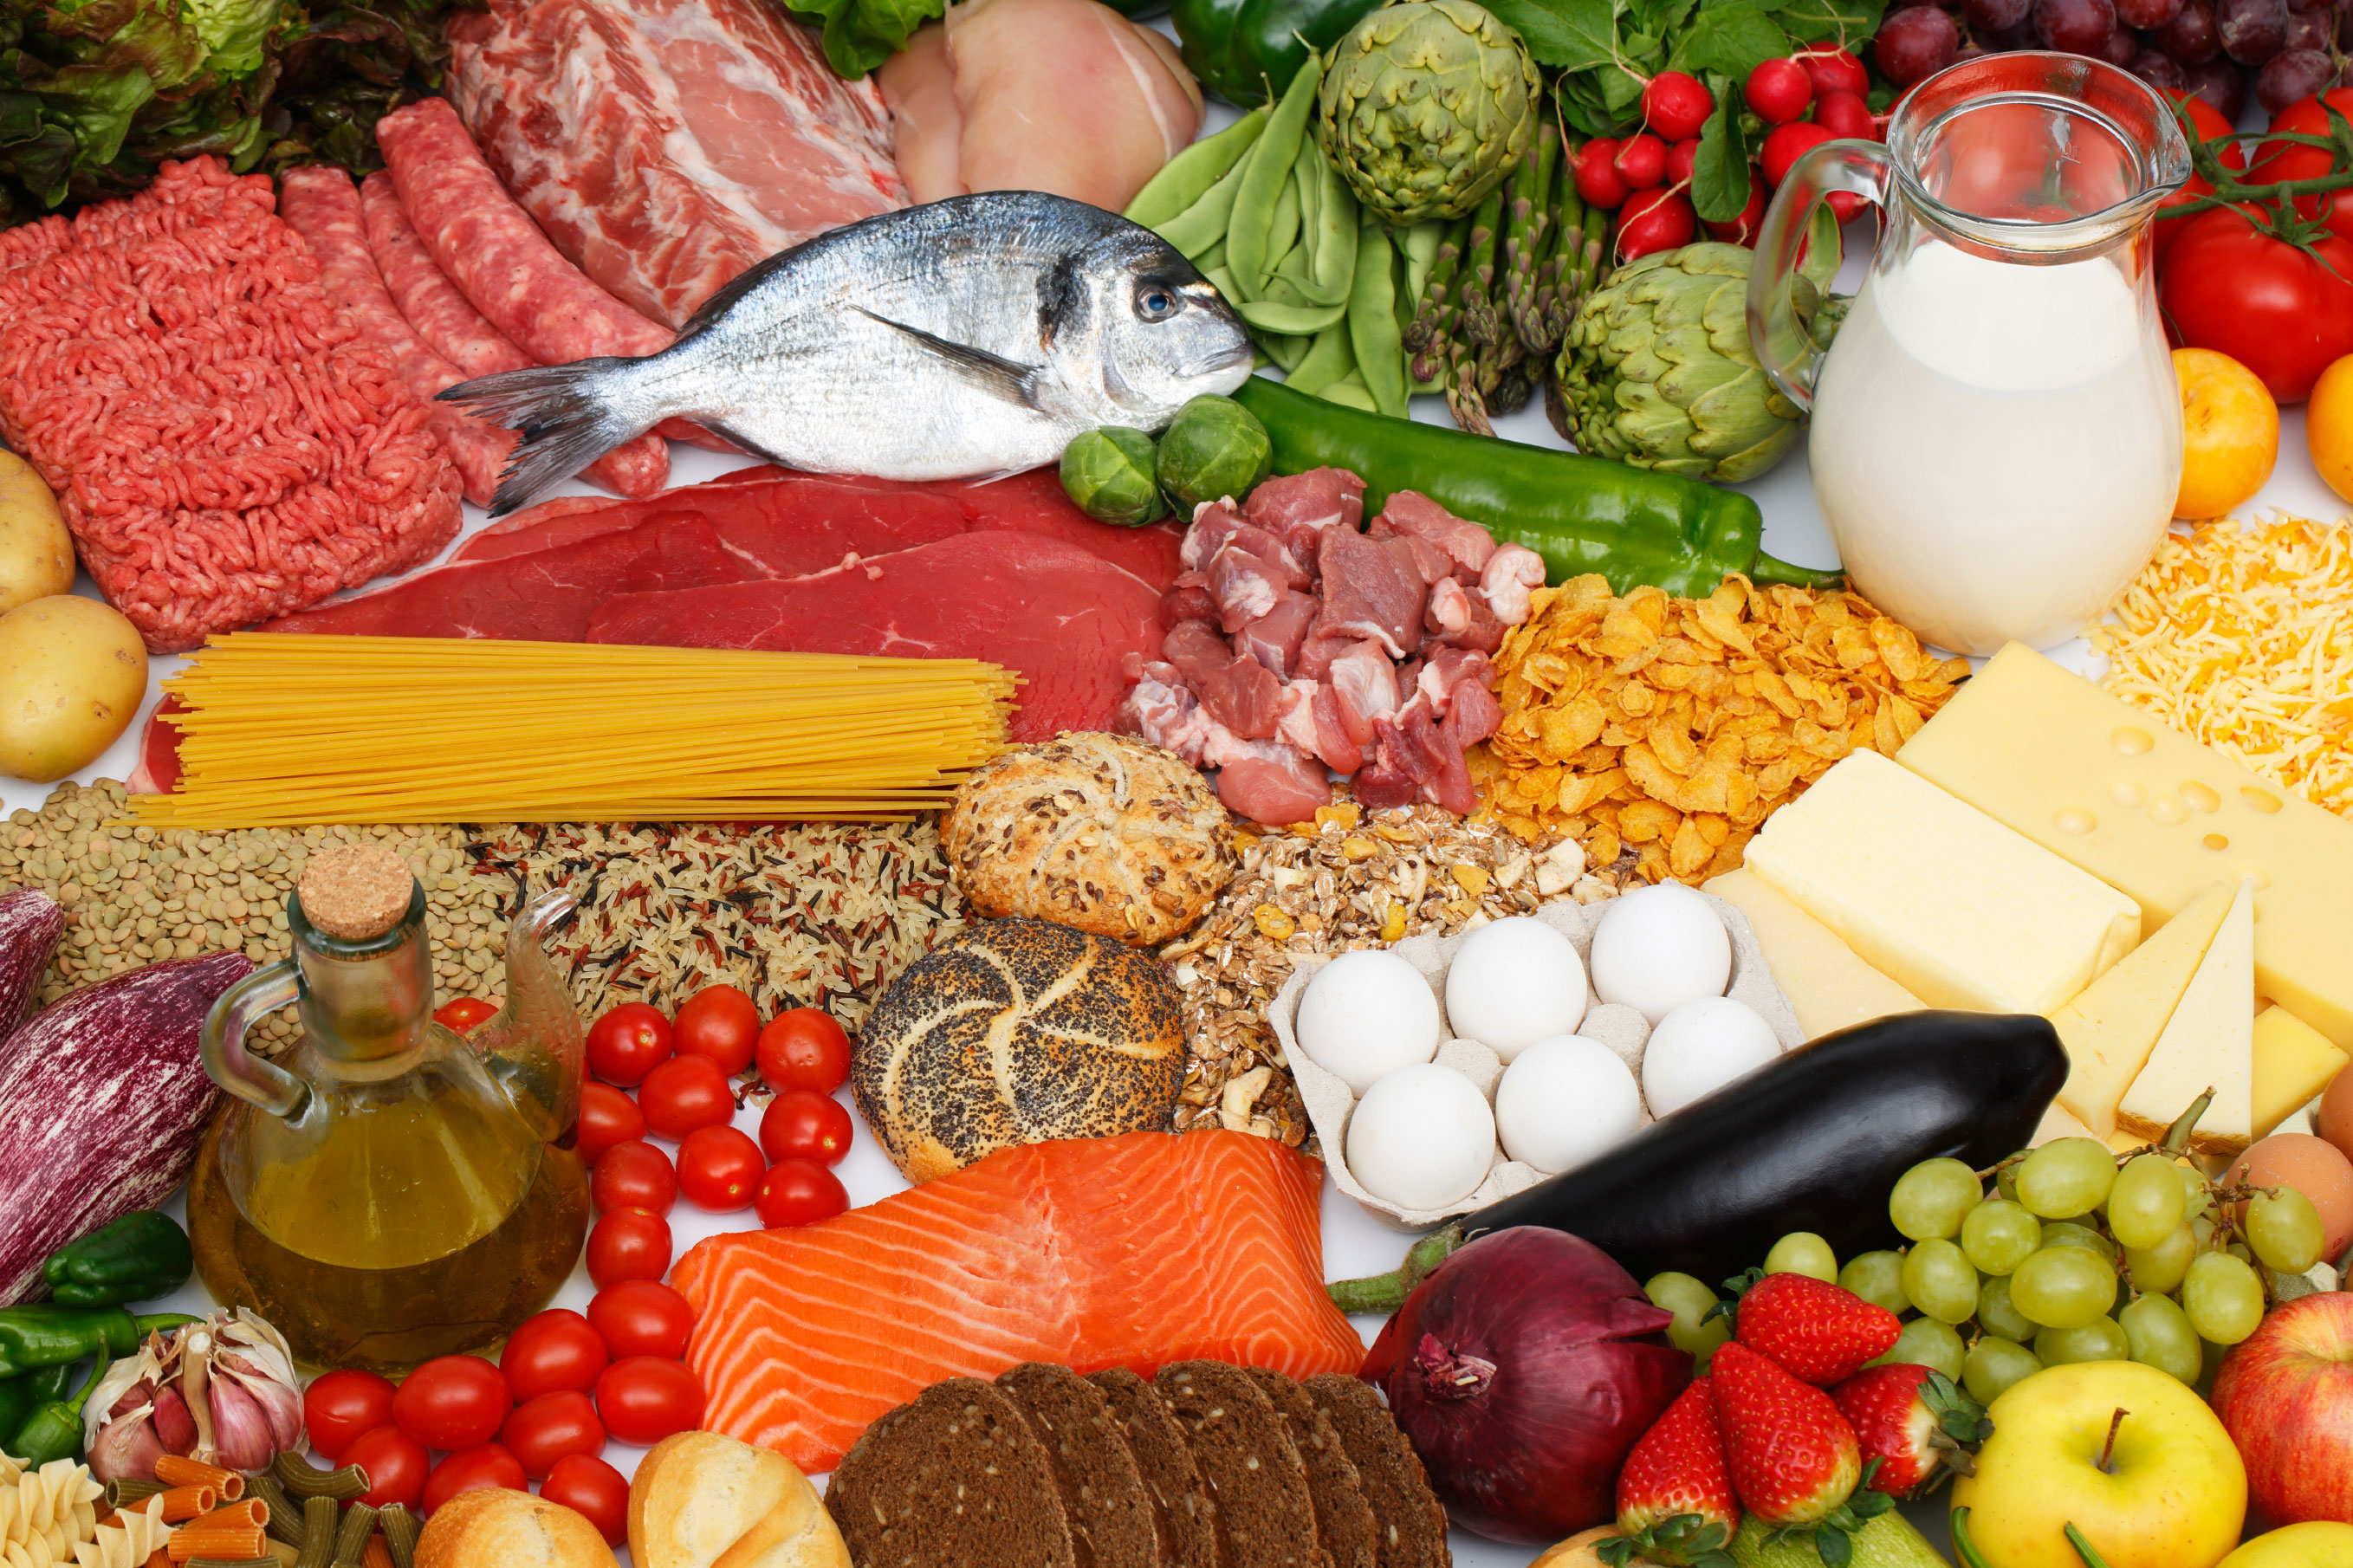 assorted-food-large-image